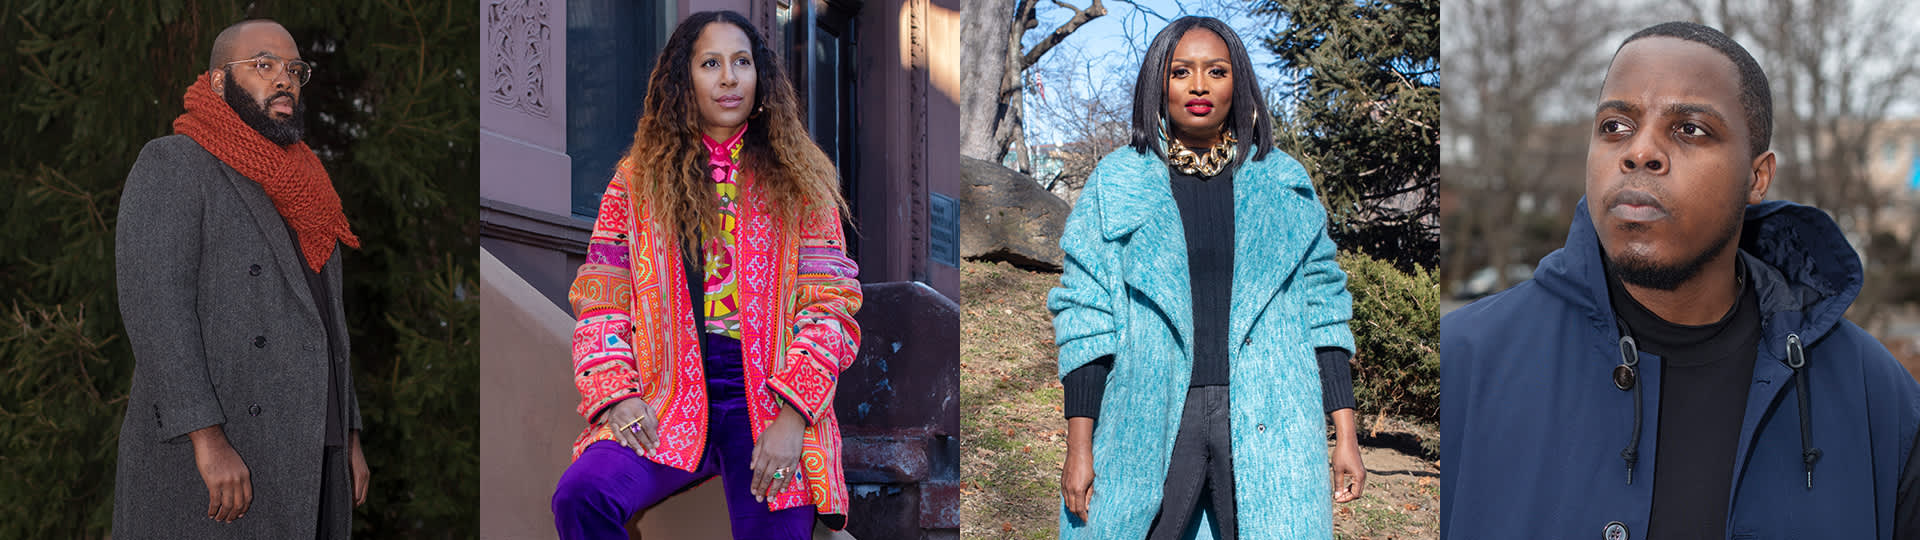 Love Letter subjects in their neighborhoods in New York City, the black experience in NYC